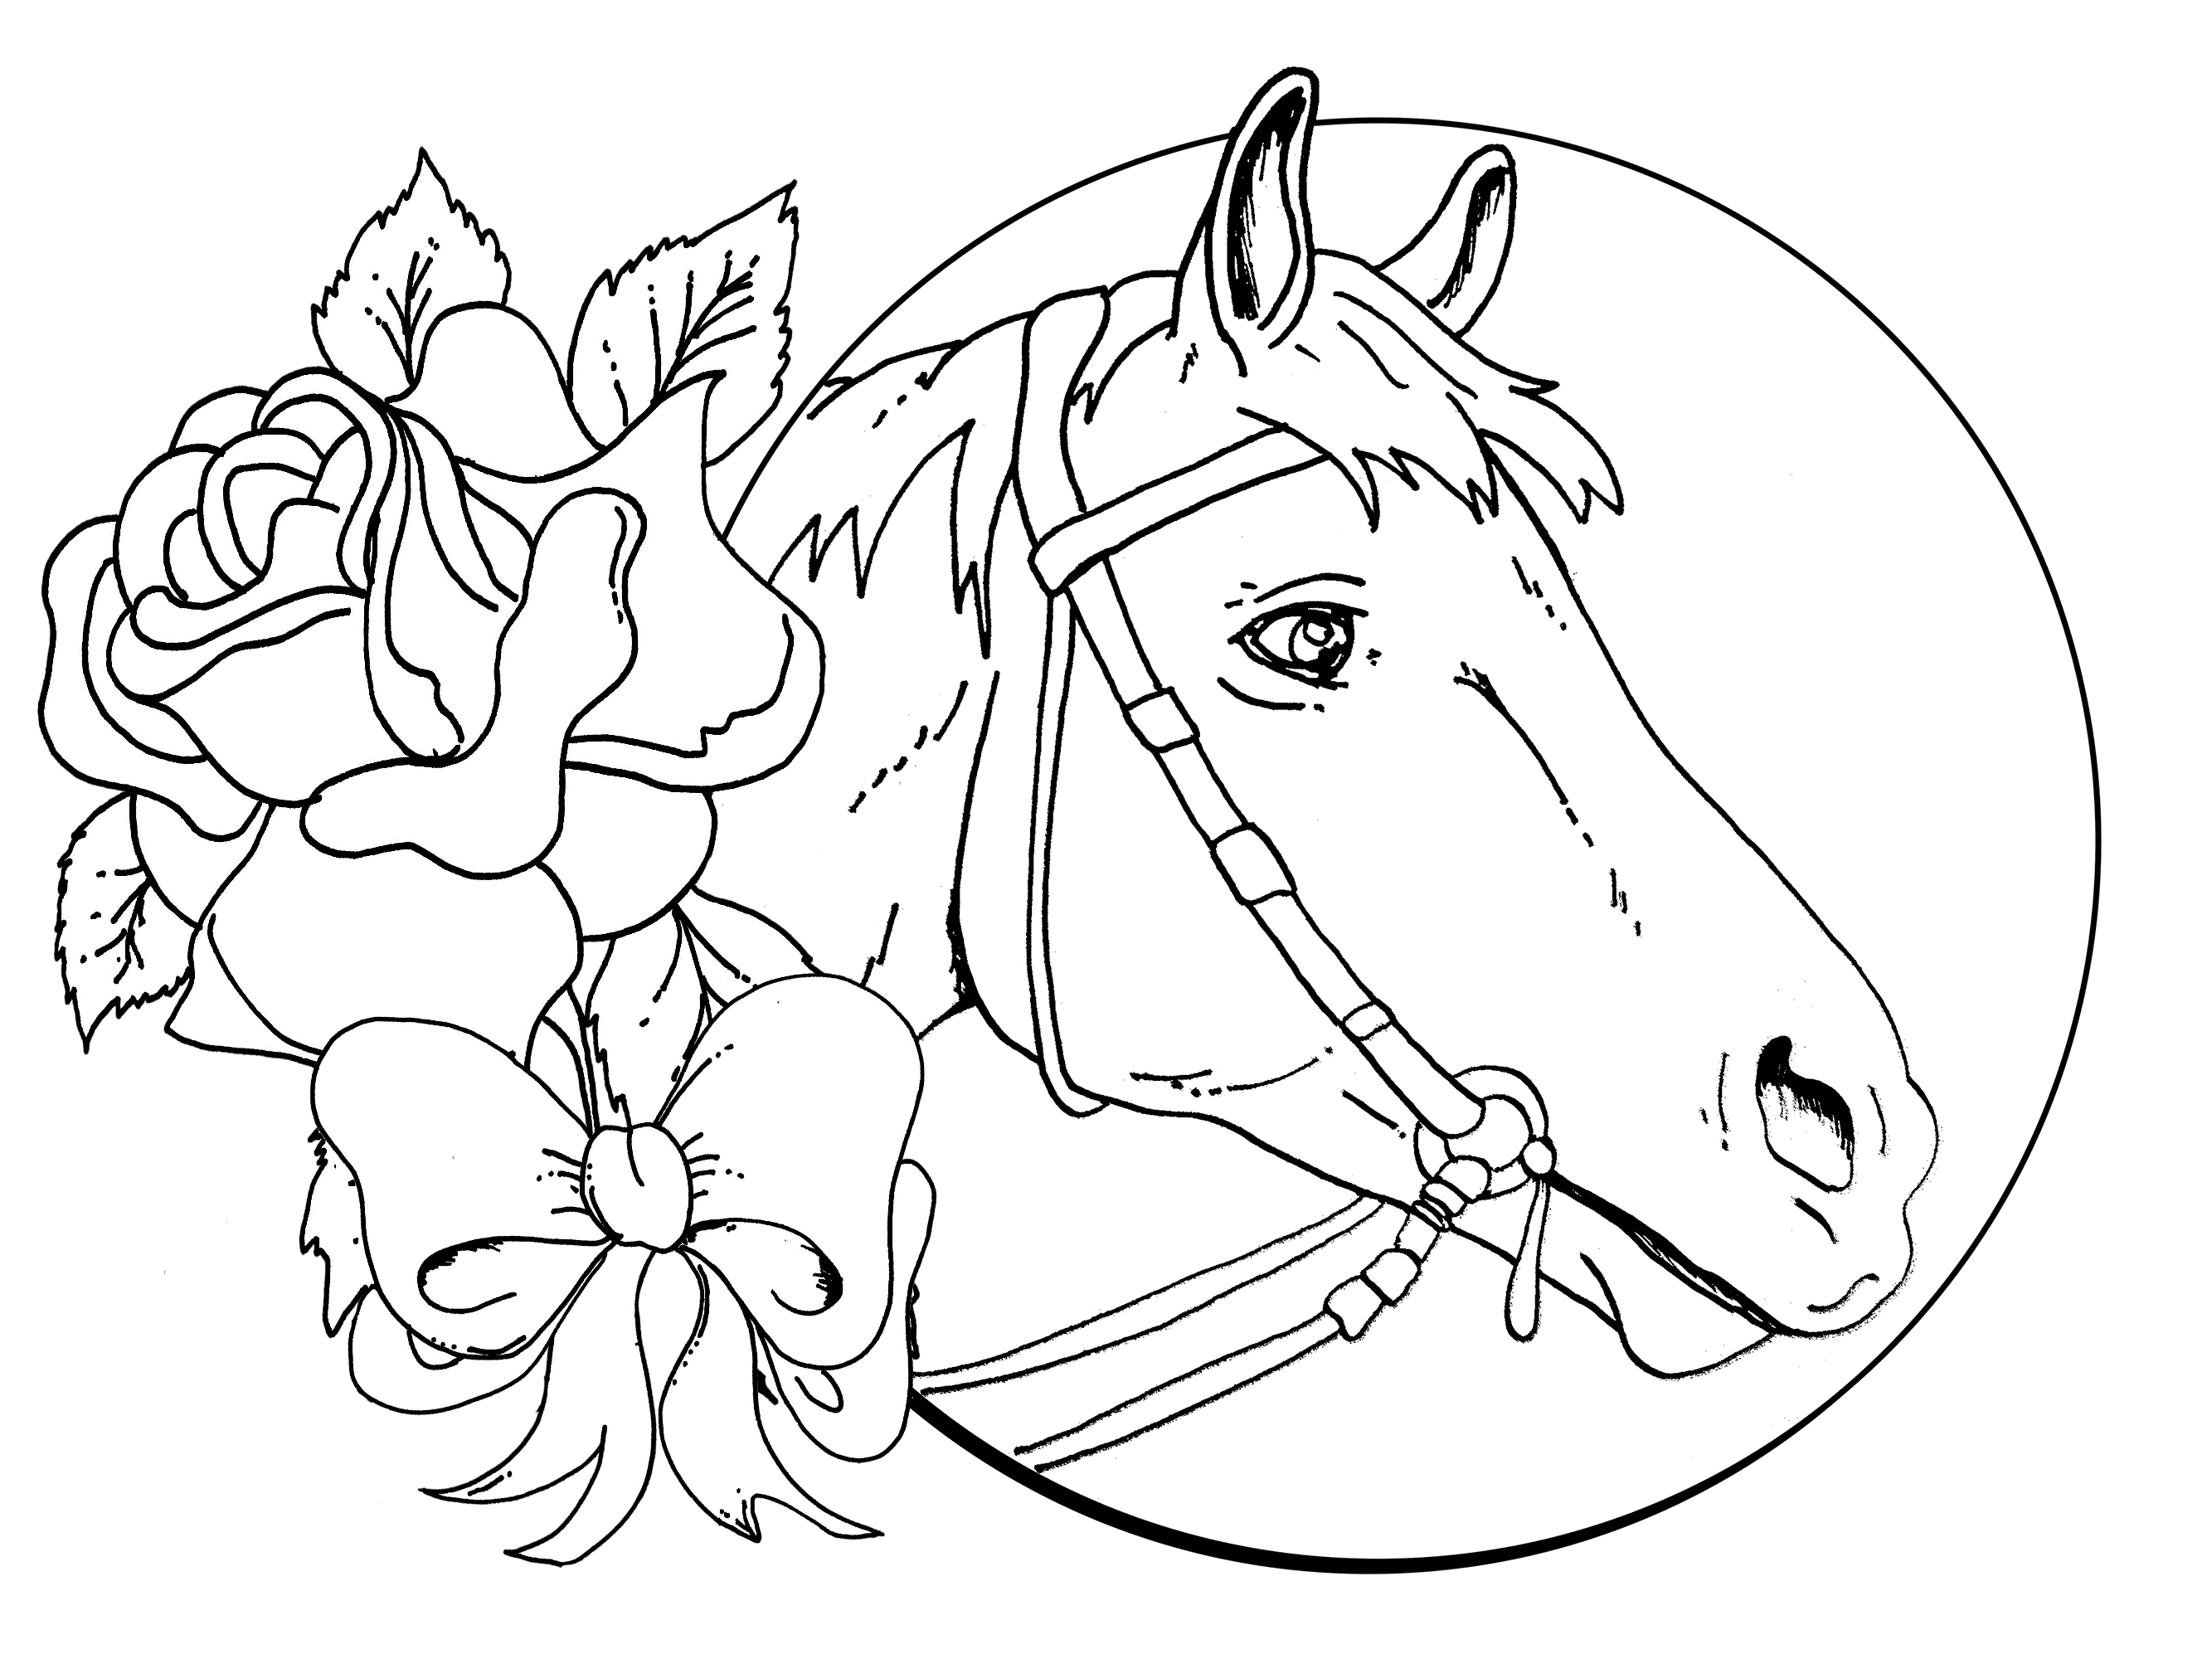 Coloring pages for girl - Coloring Pages For Girl 6